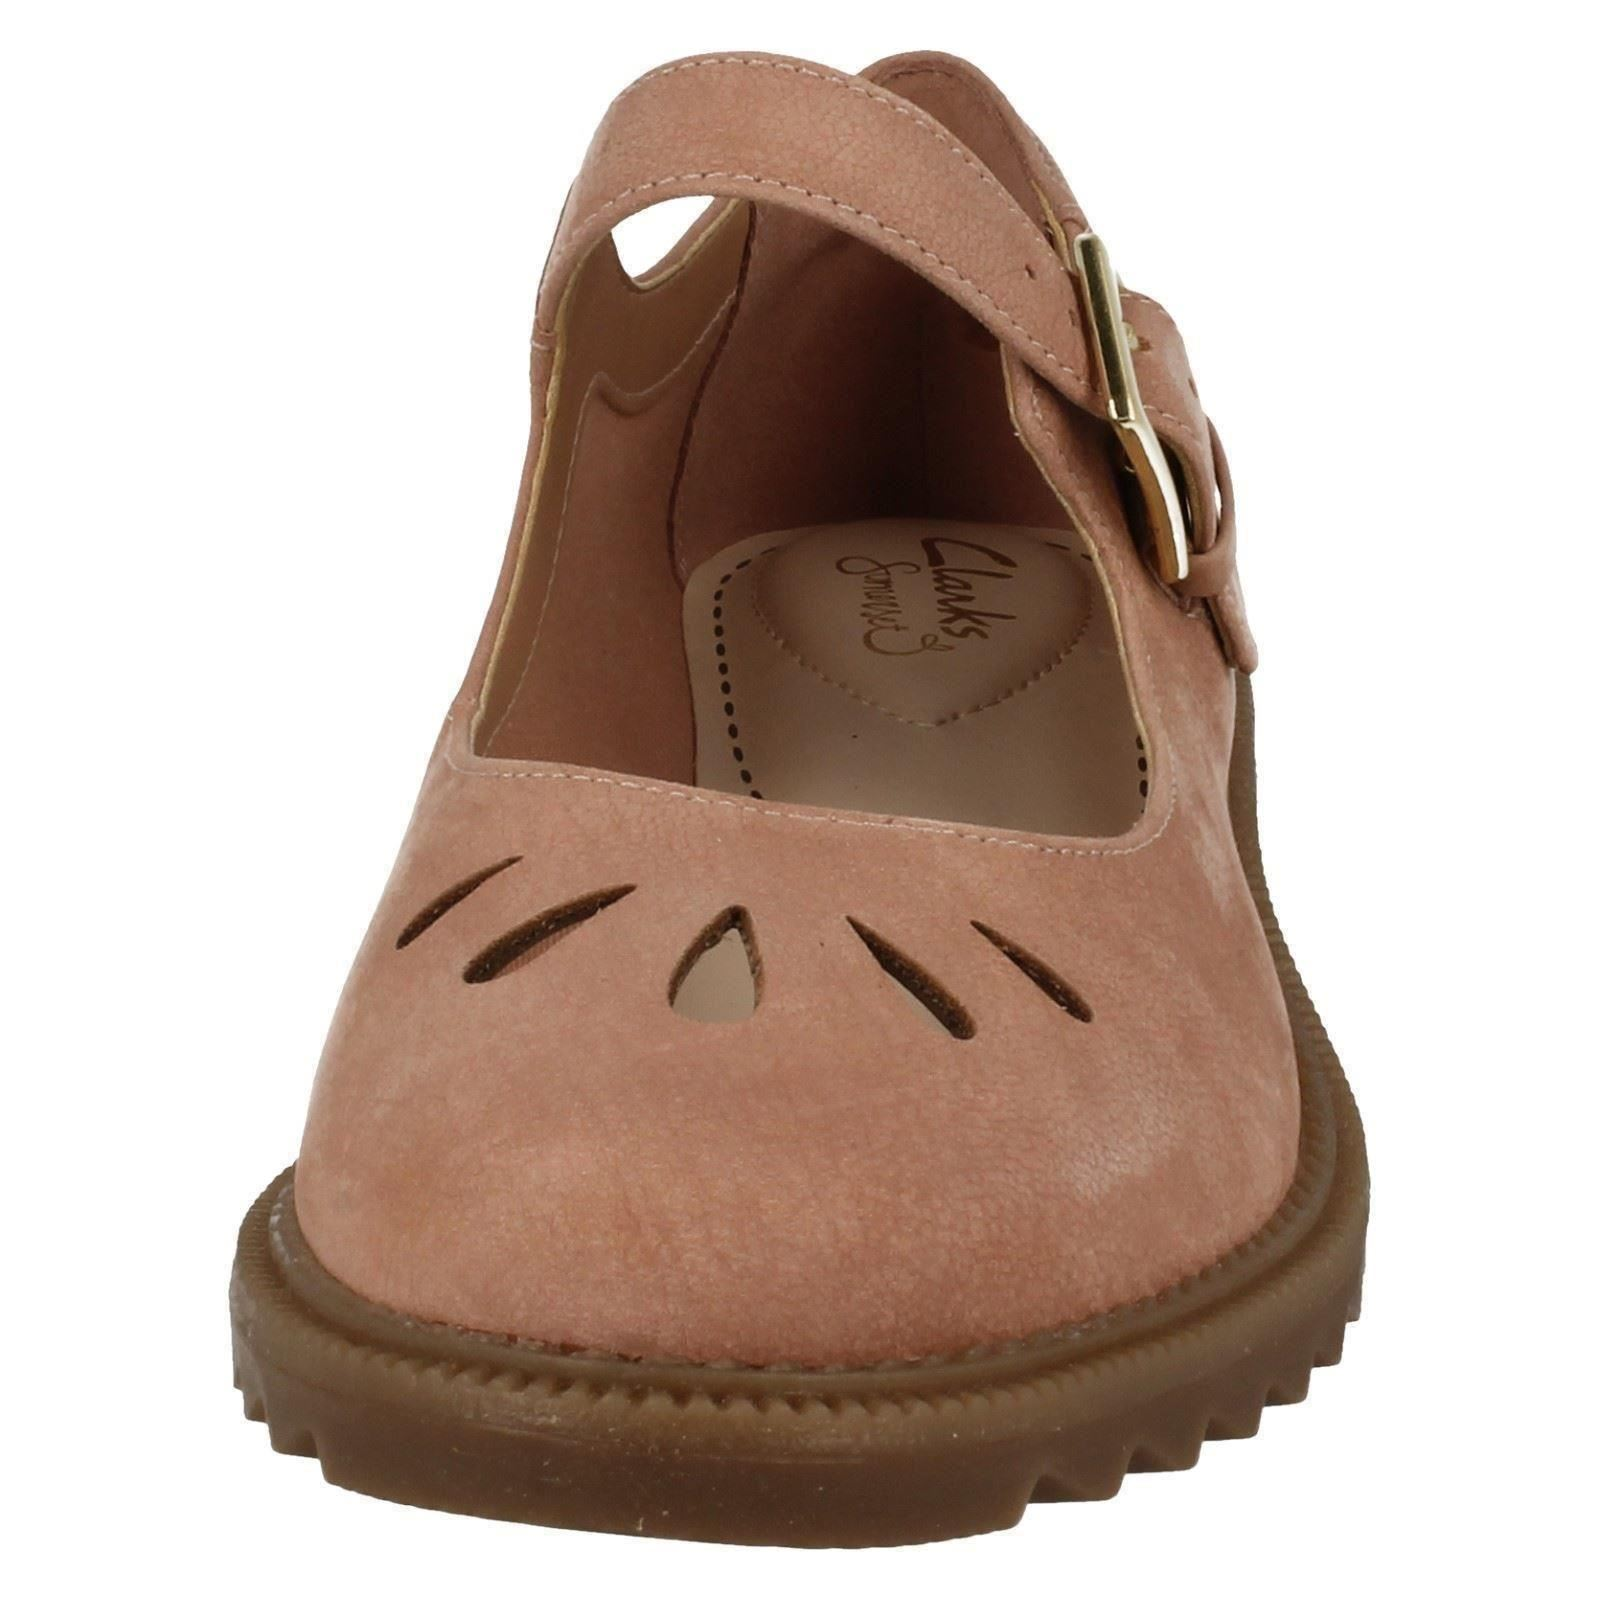 Ladies-Clarks-Casual-Flat-Shoes-Griffin-Marni